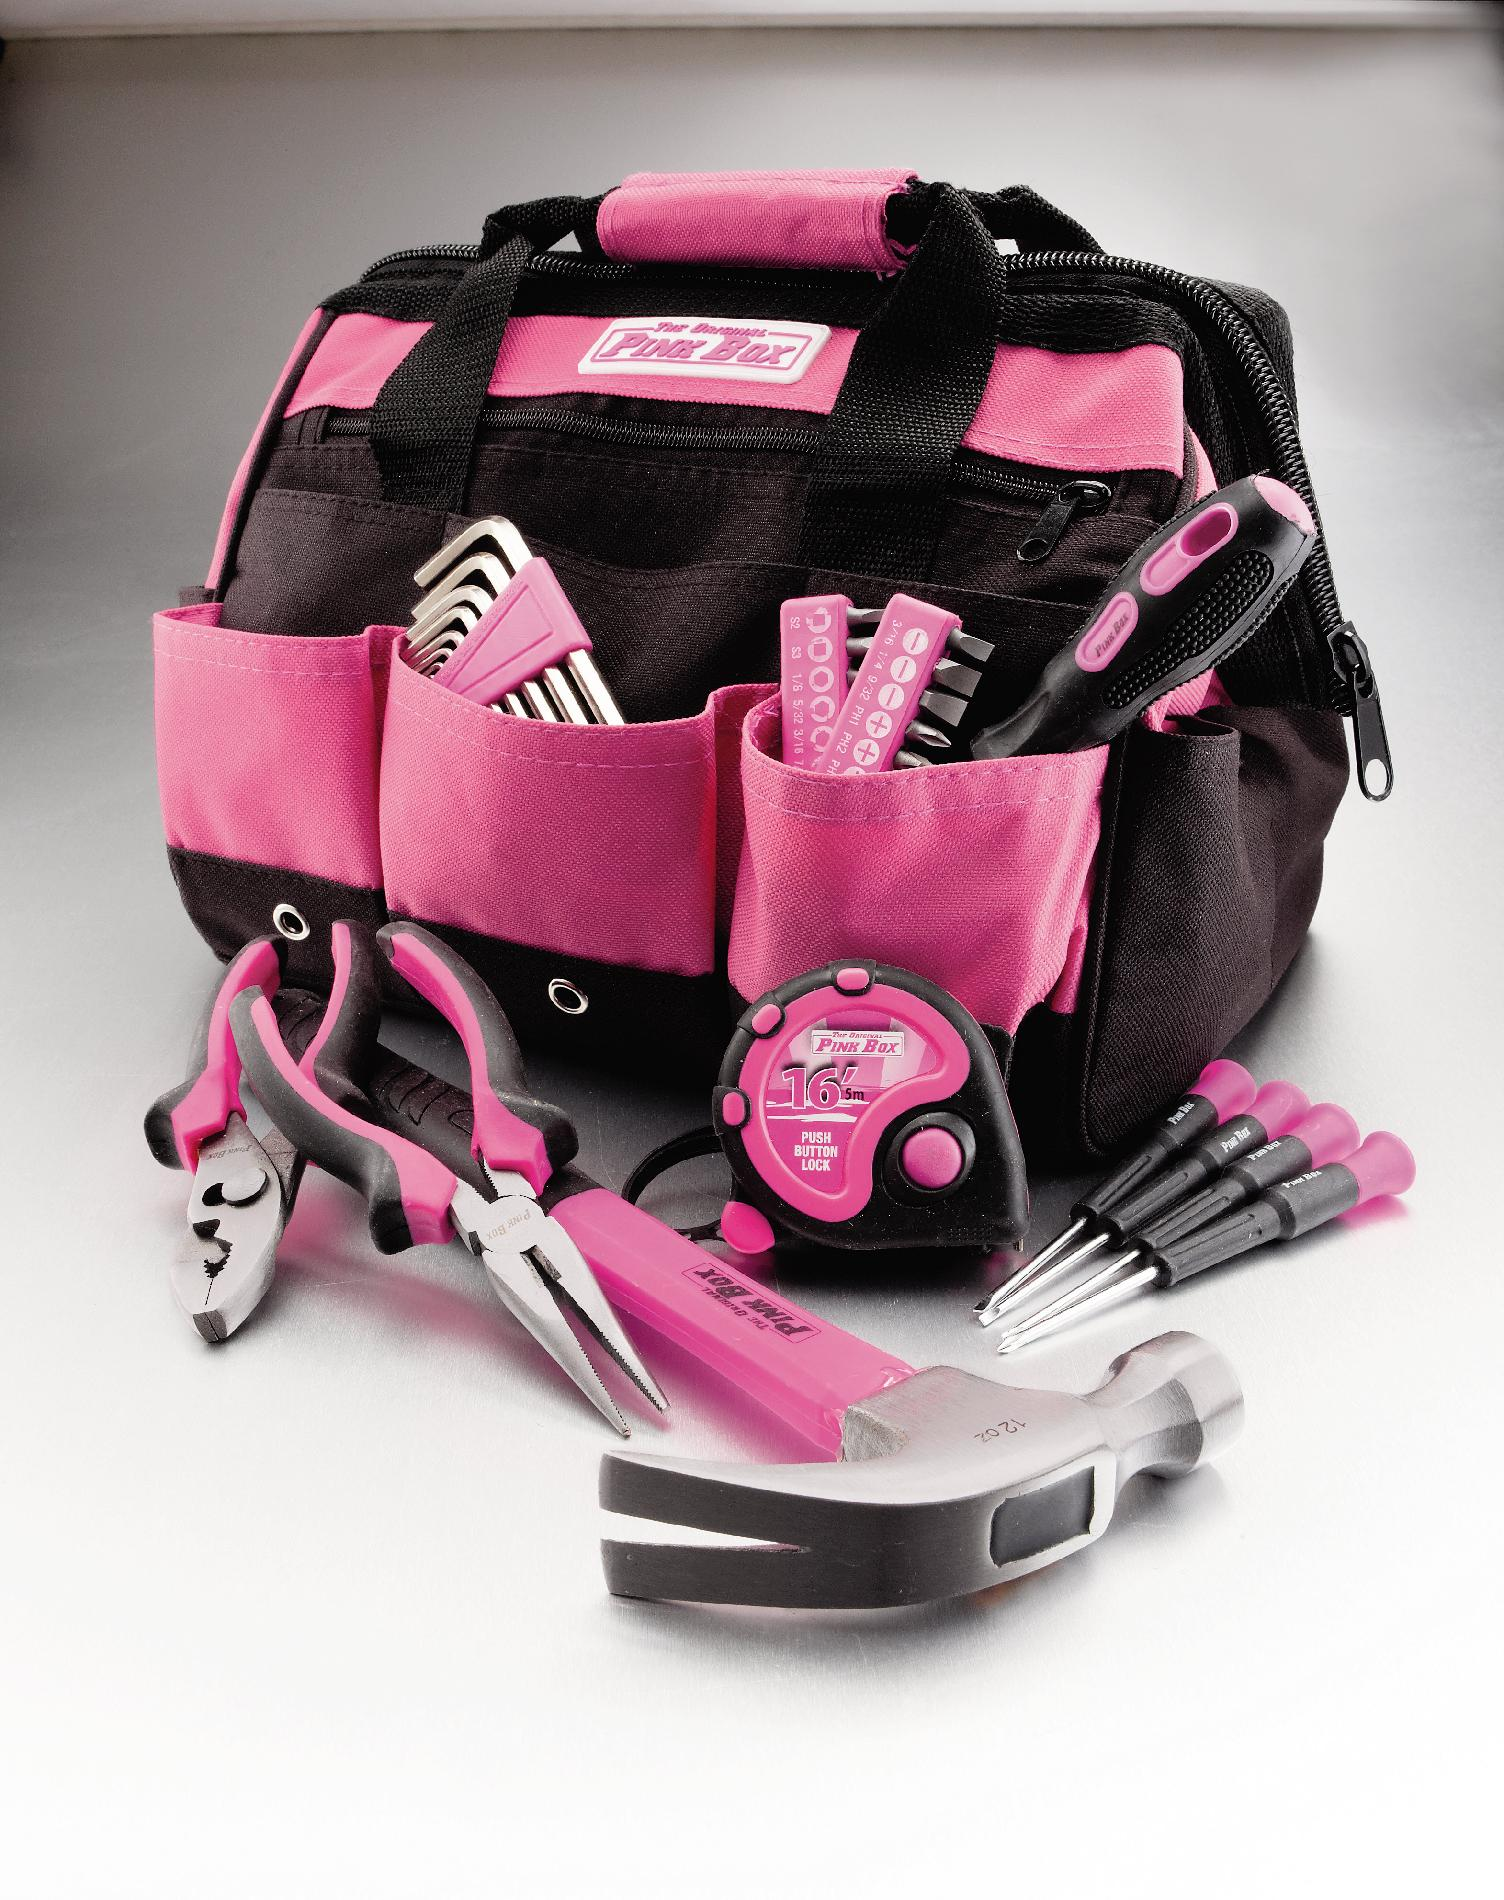 The Original Pink Box PINK Multi-Puurpose Pink Tools Set